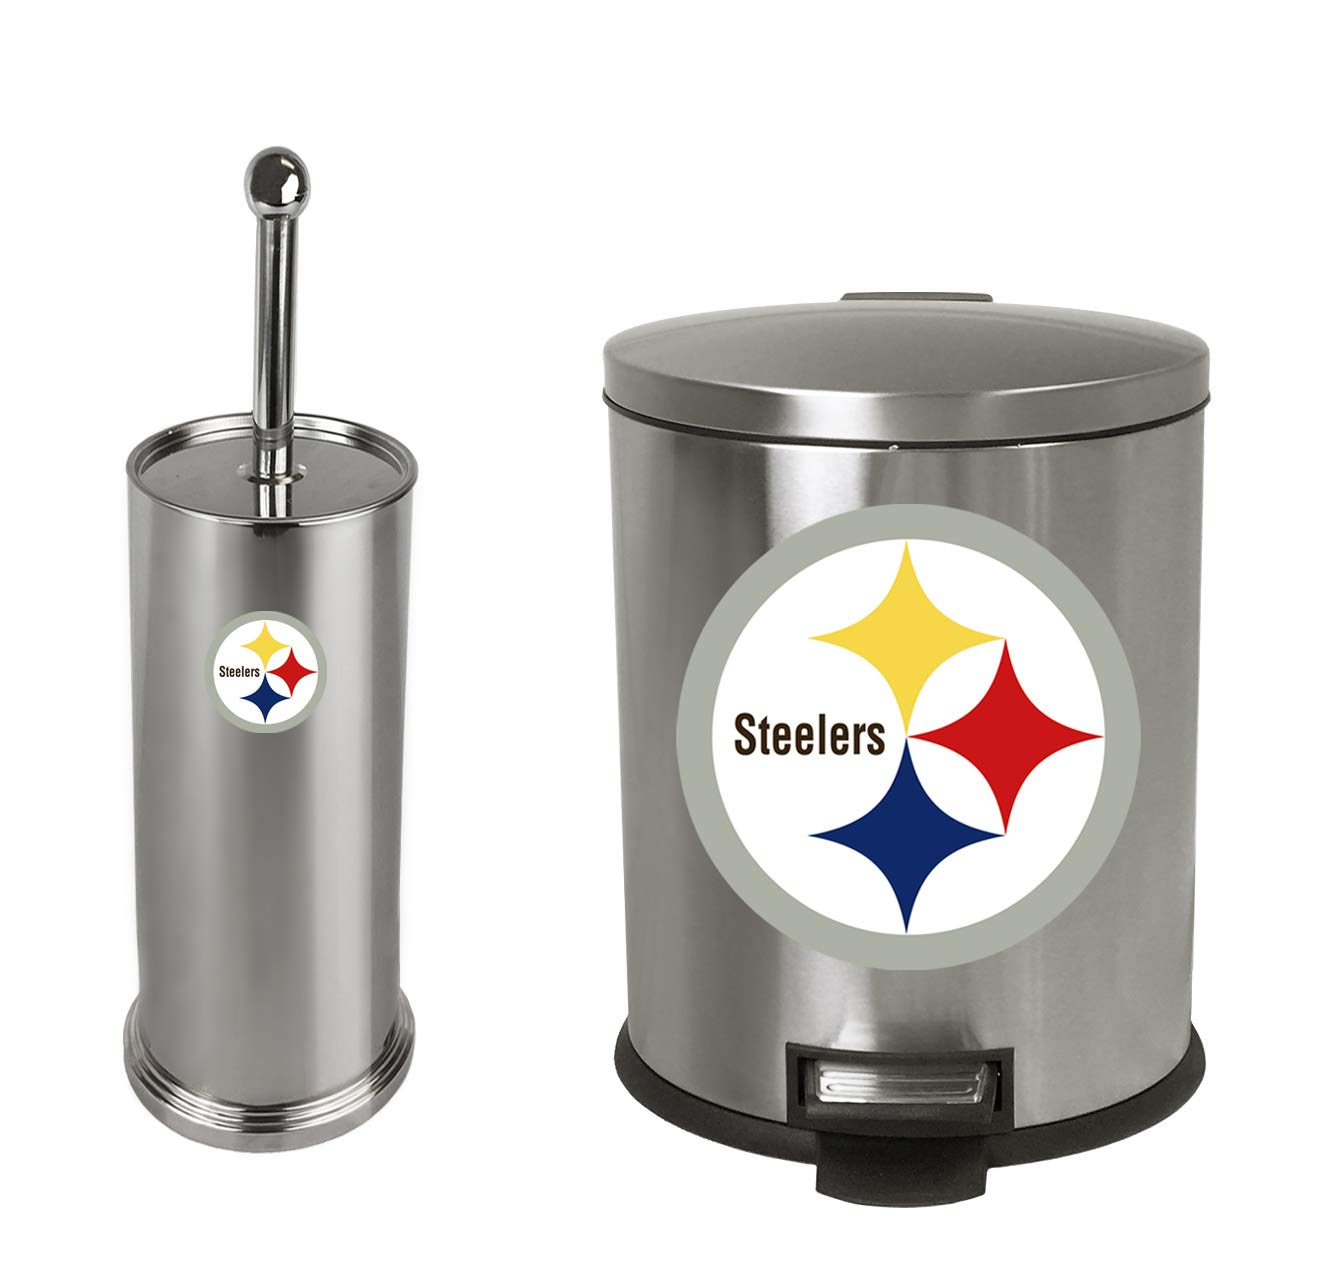 The Furniture Cove 2-Pc Set - 1.3 Gallon Stainless Steel Step Trash Can Waste Basket and Toilet Brush with Holder Featuring the Choice of Your Favorite Football Team Logo (Steelers)